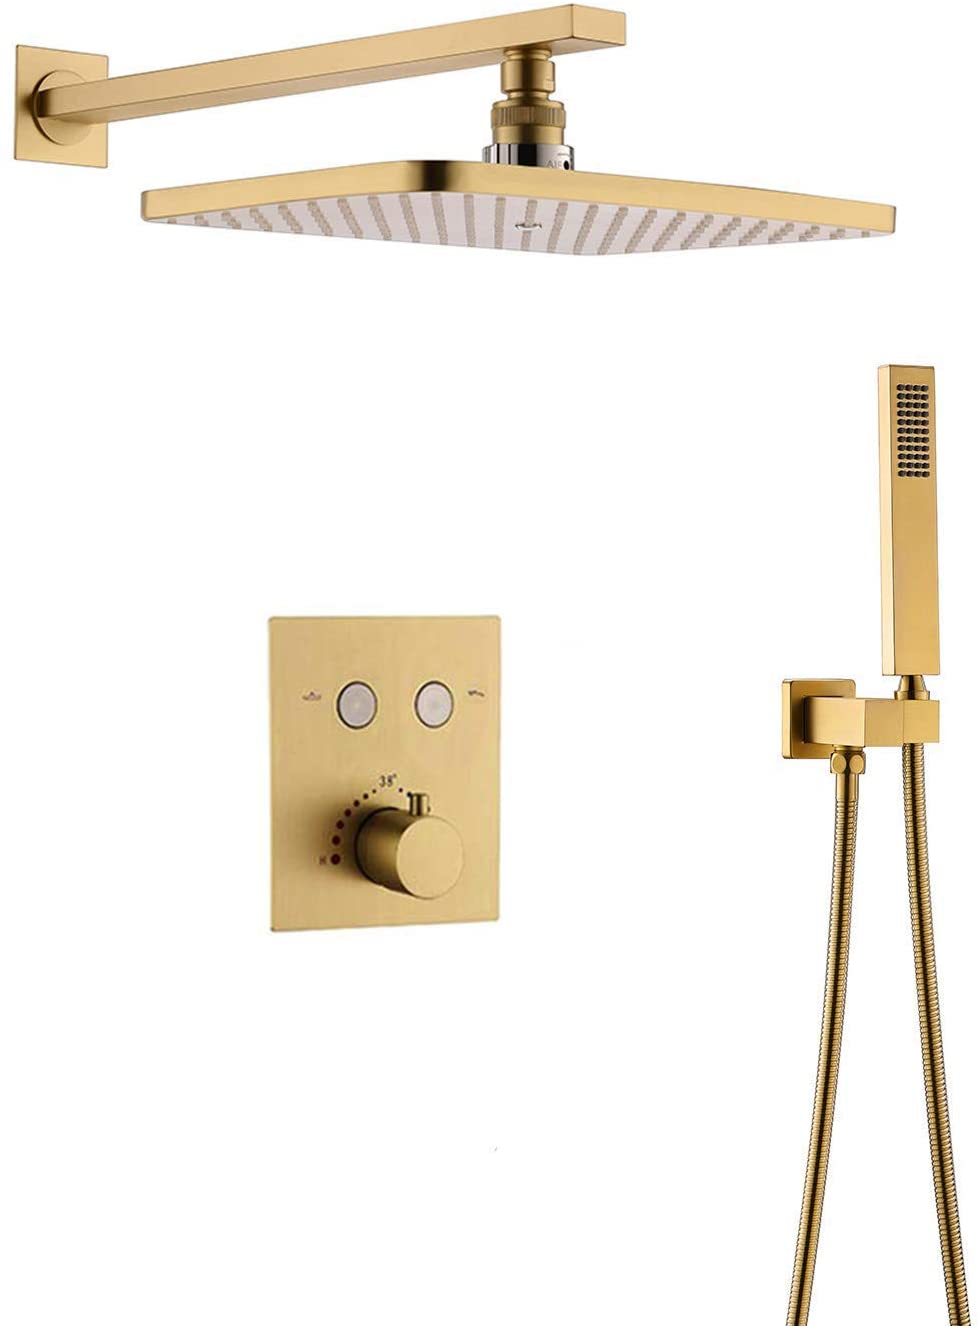 AYIVG Thermostatic Brass Rectangular 12 x 8 Inch Rainfall Shower System Set (Brushed Gold)